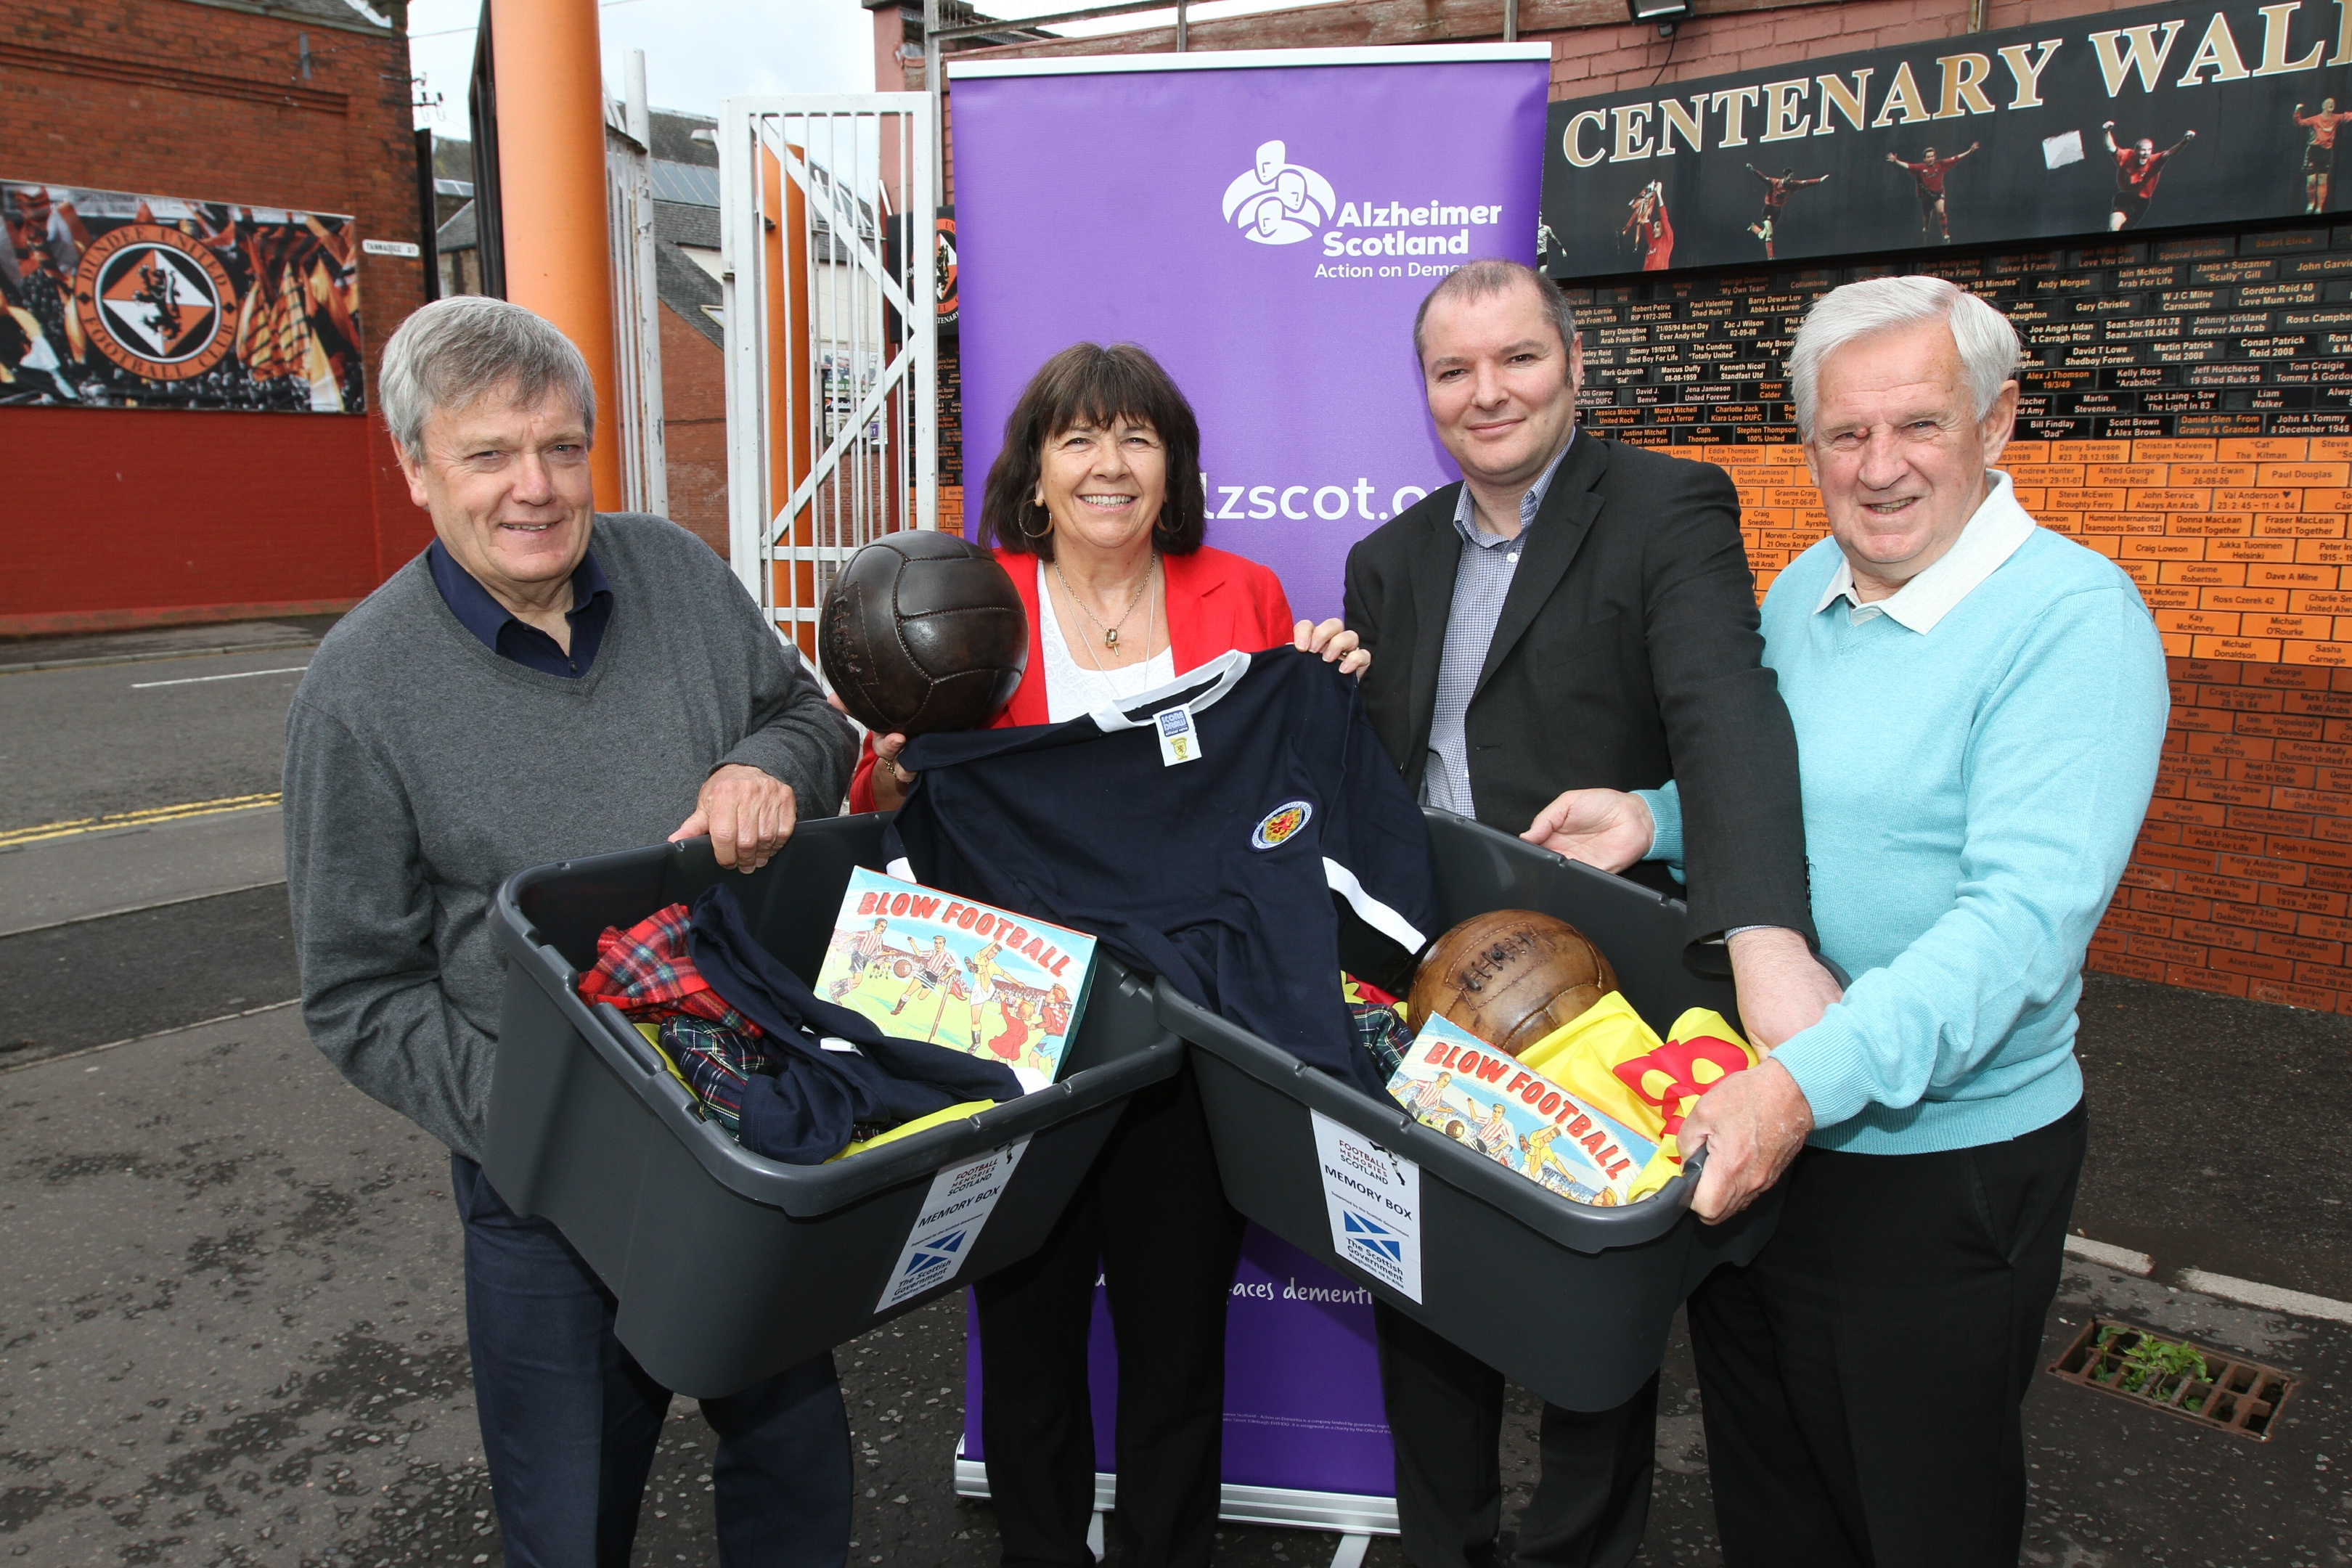 Amanda Kopel and Gordon Wallace receive the memory boxes alongside volunteer Michael Whyte and Richard McBrearty.